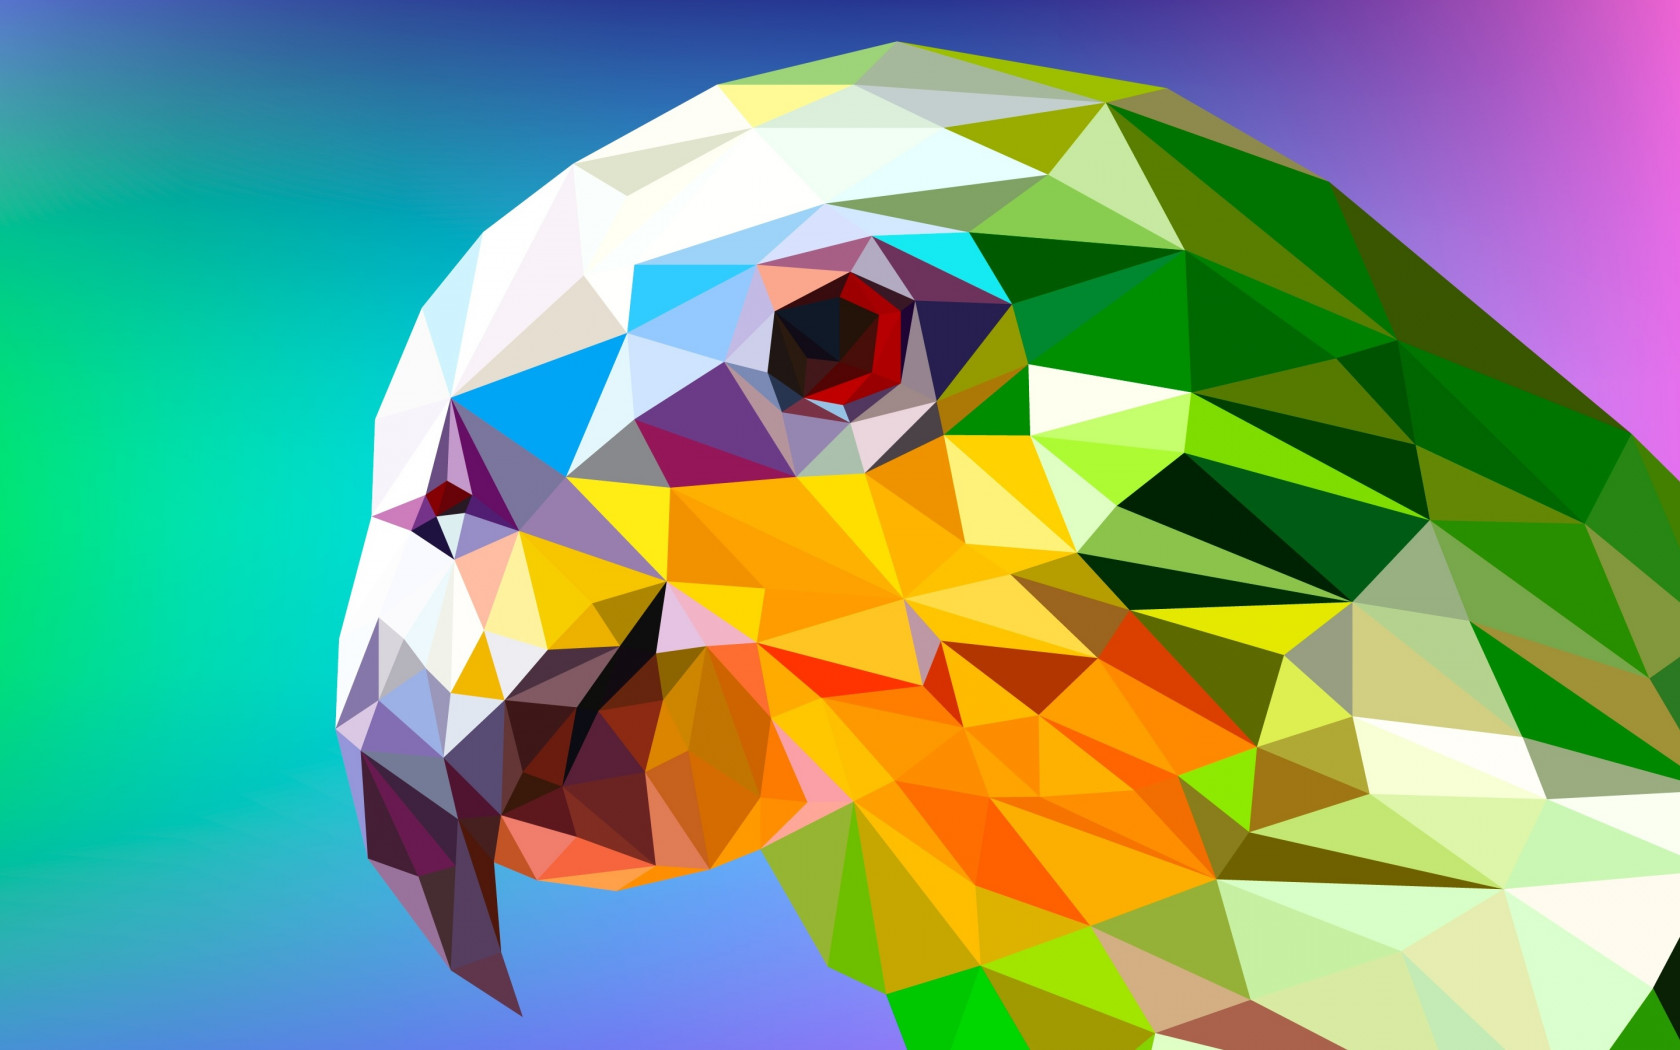 Low Poly Illustration: Parrot wallpaper 1680x1050